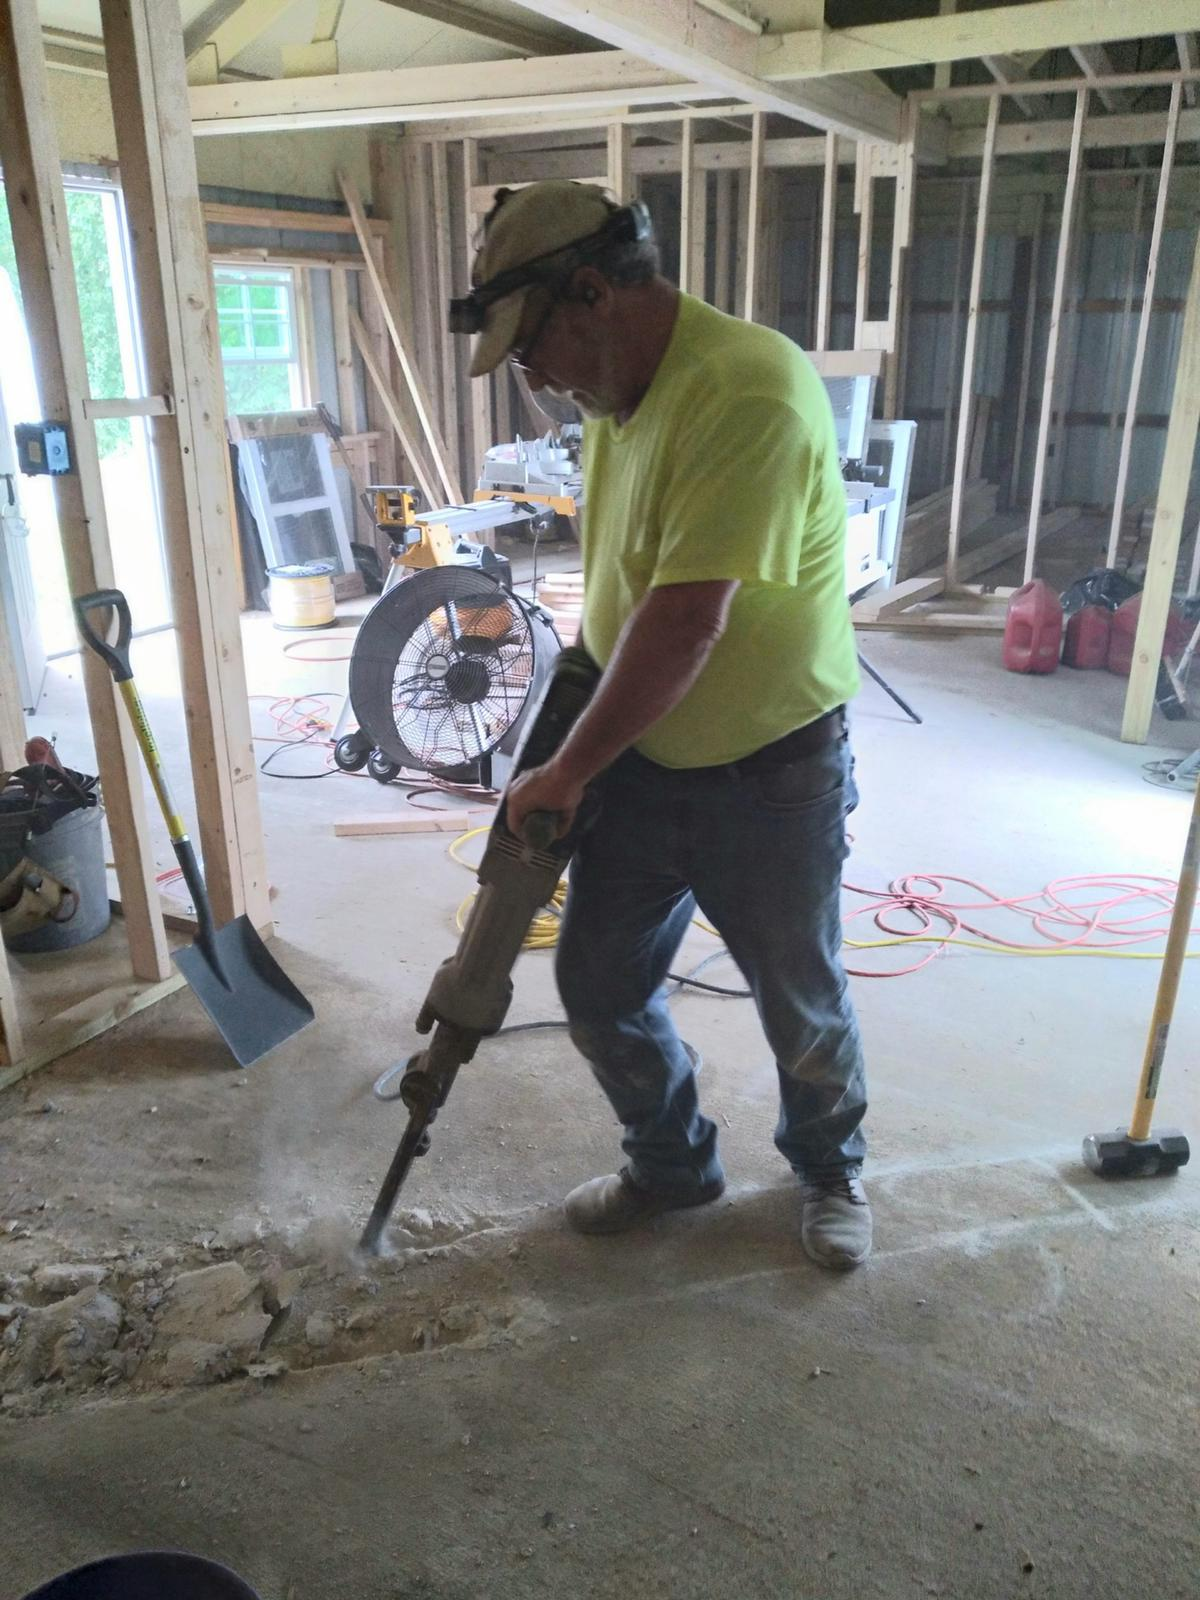 And the only way to get drain pipes under a pre-existing cement pad, Jack hammers!